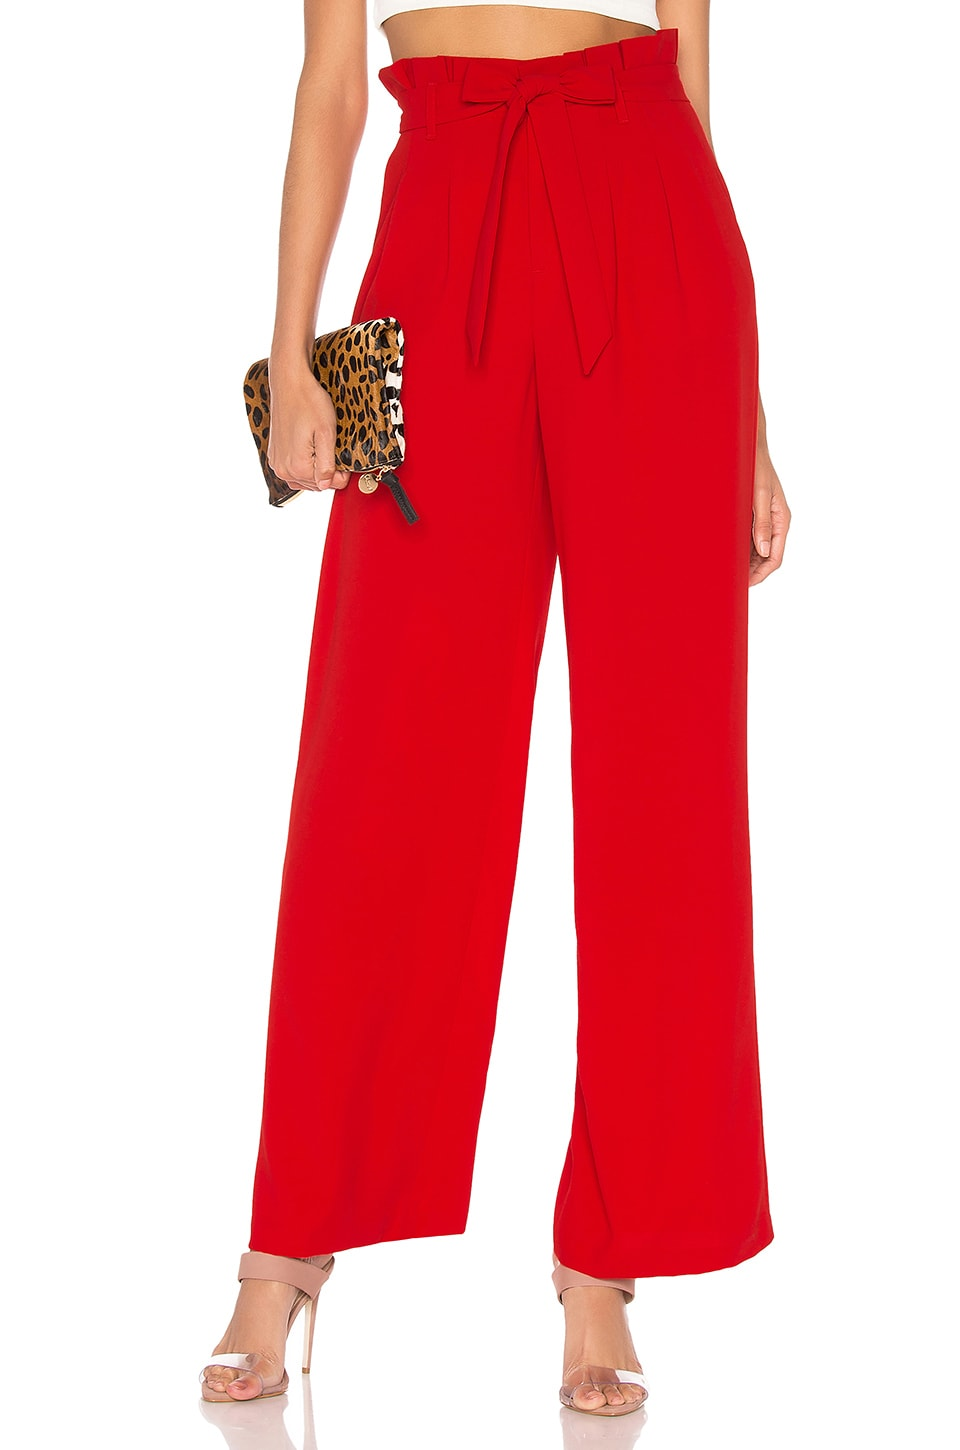 Alice + Olivia PANTALON FARREL